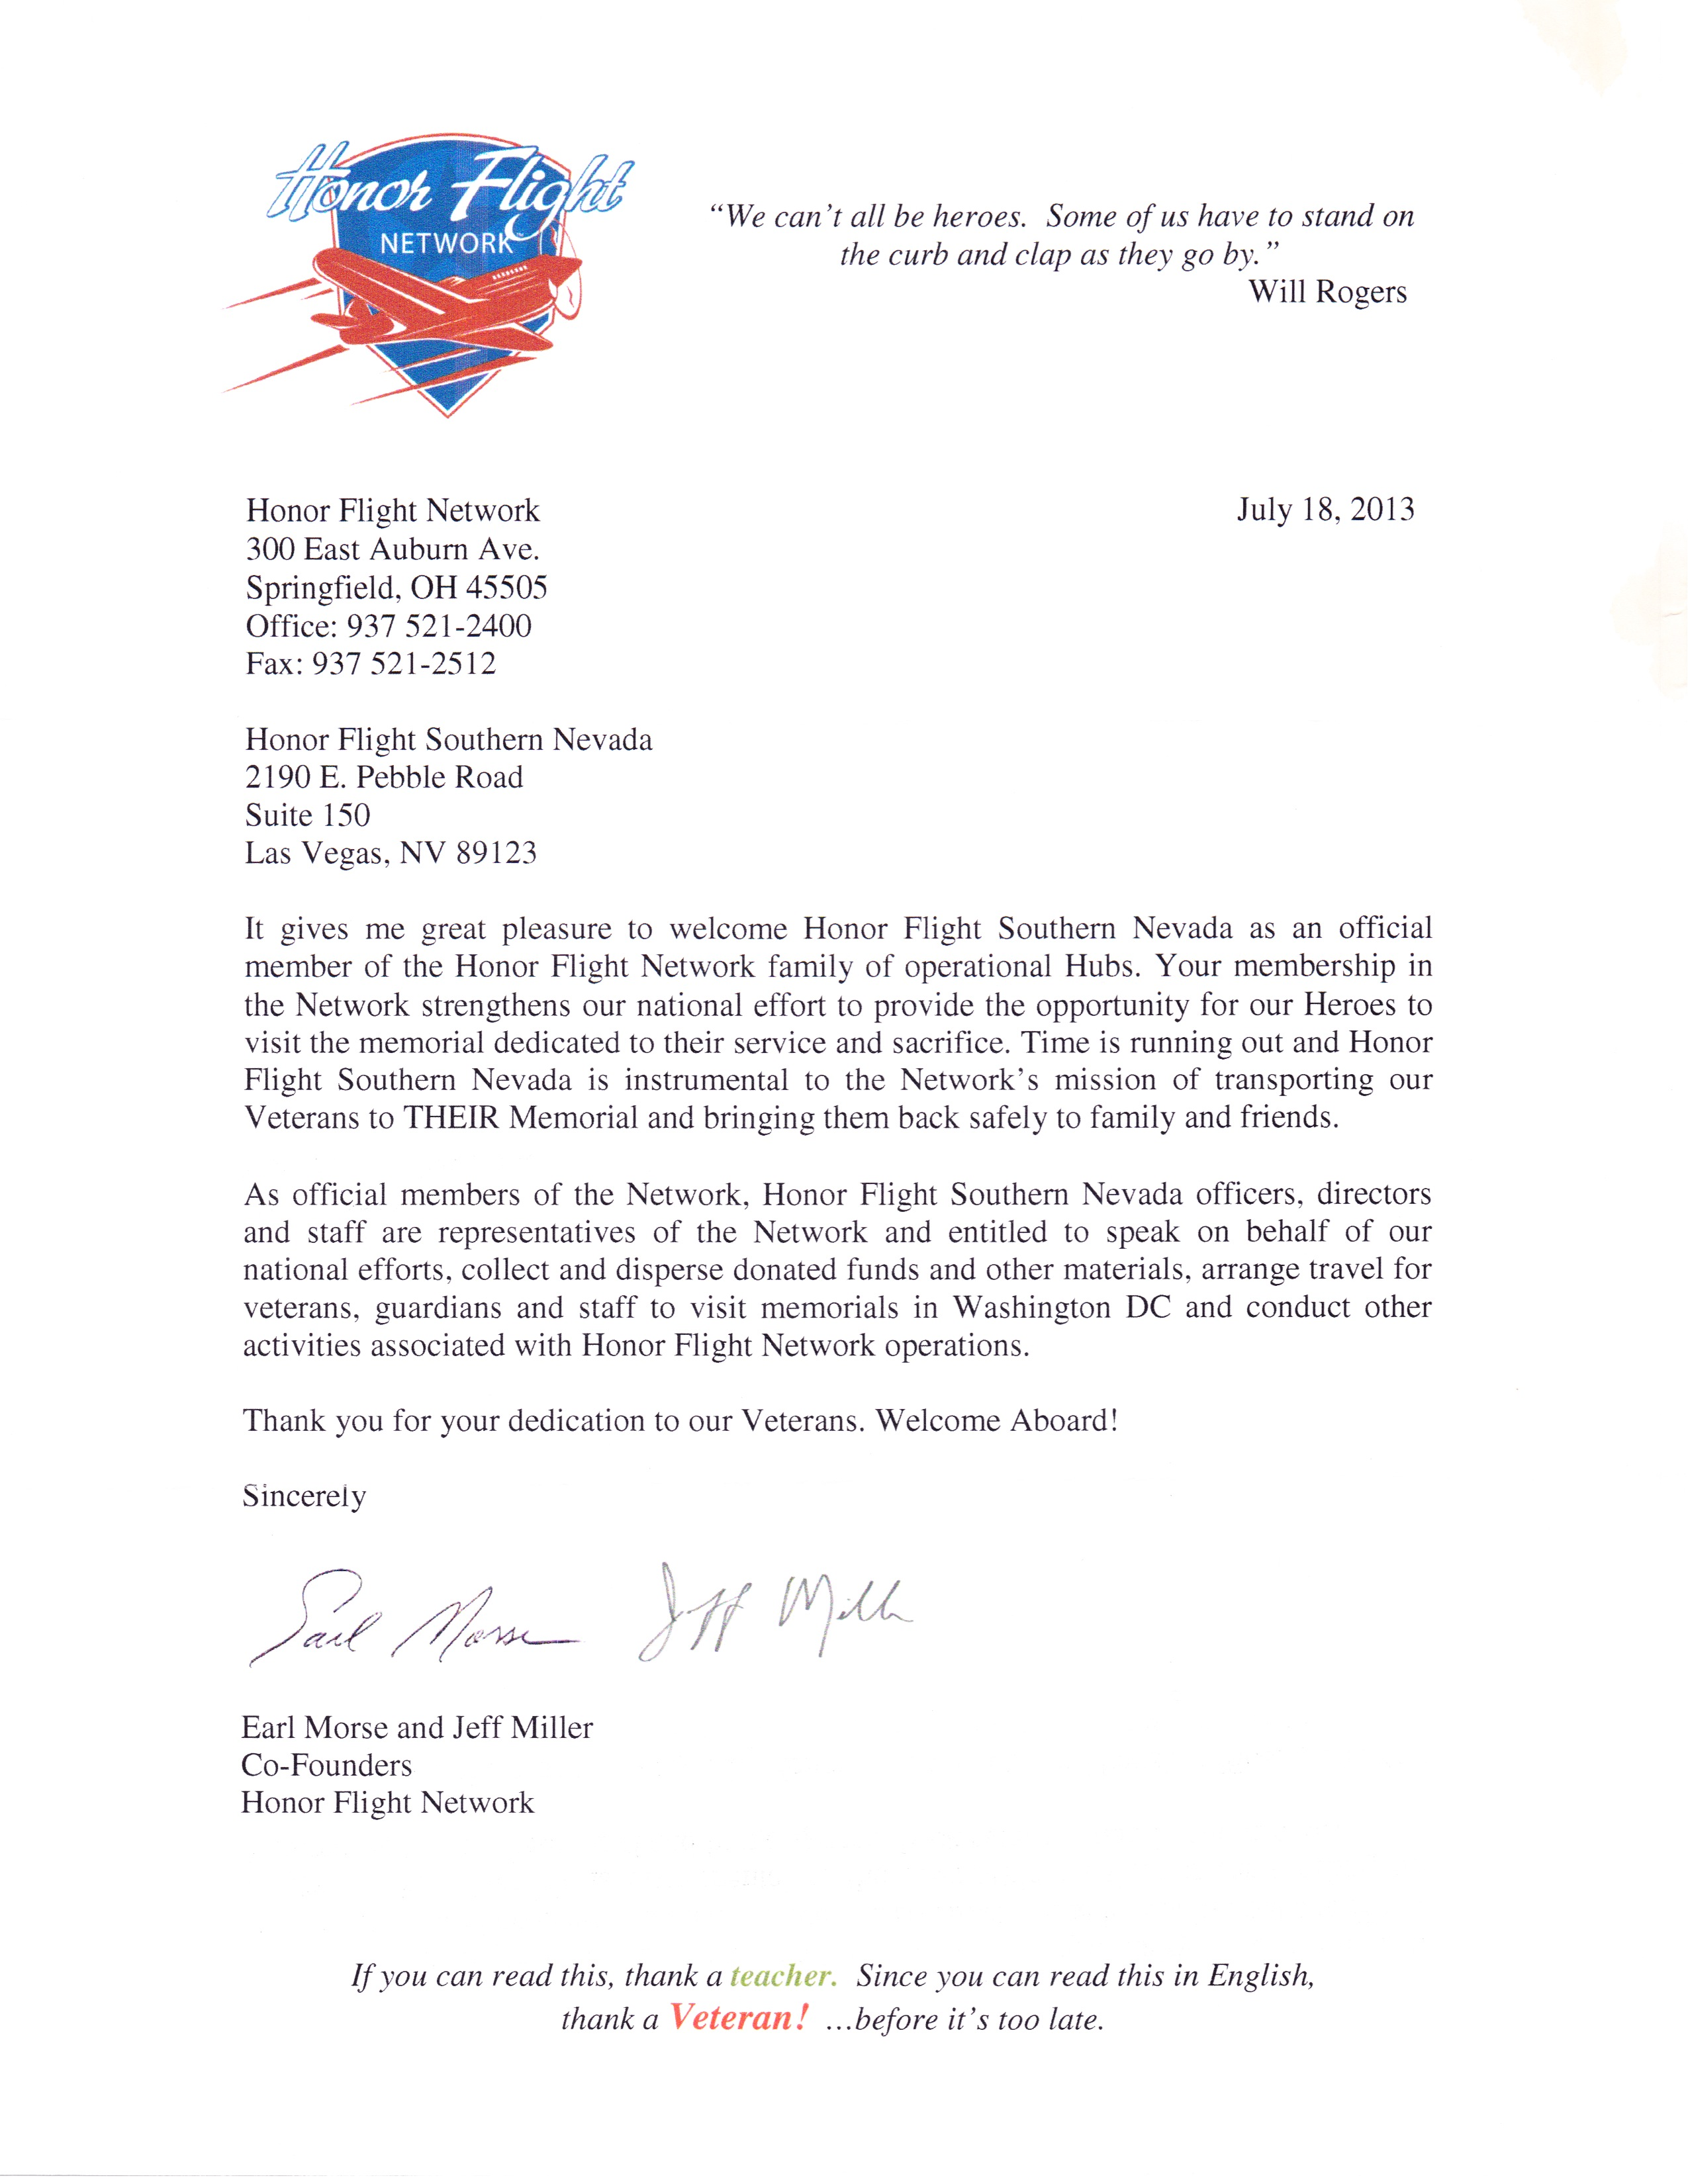 honor flight letter examples honor flight southern nevada home 22133